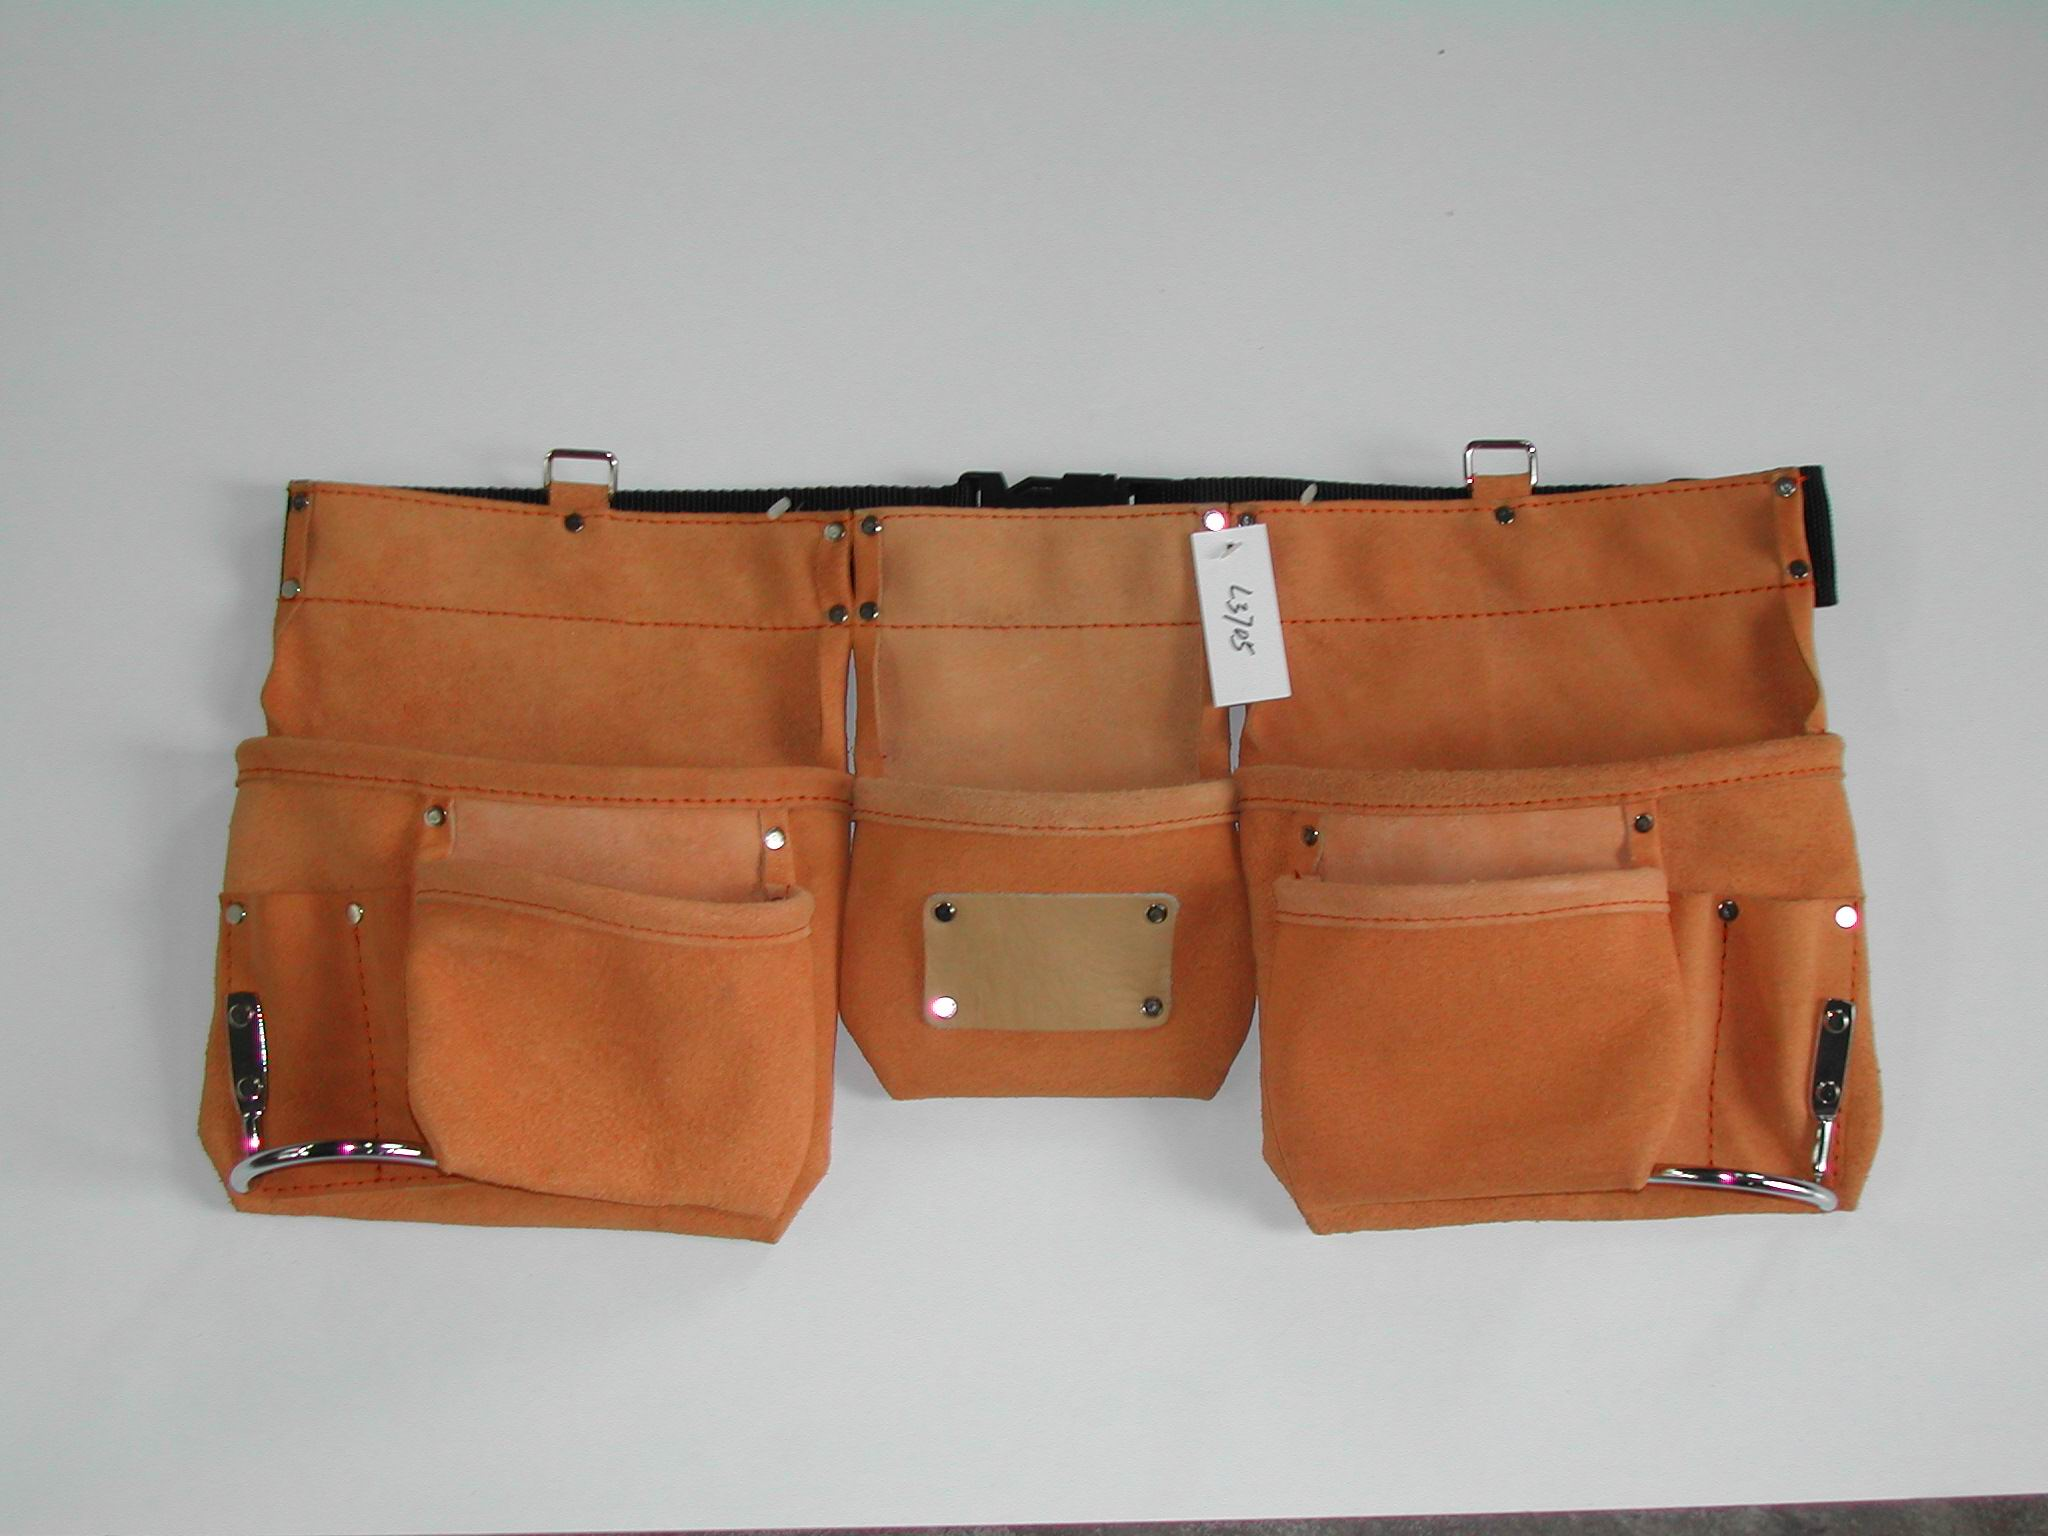 carpenter belts/tool pouches/belts for huntings etc.